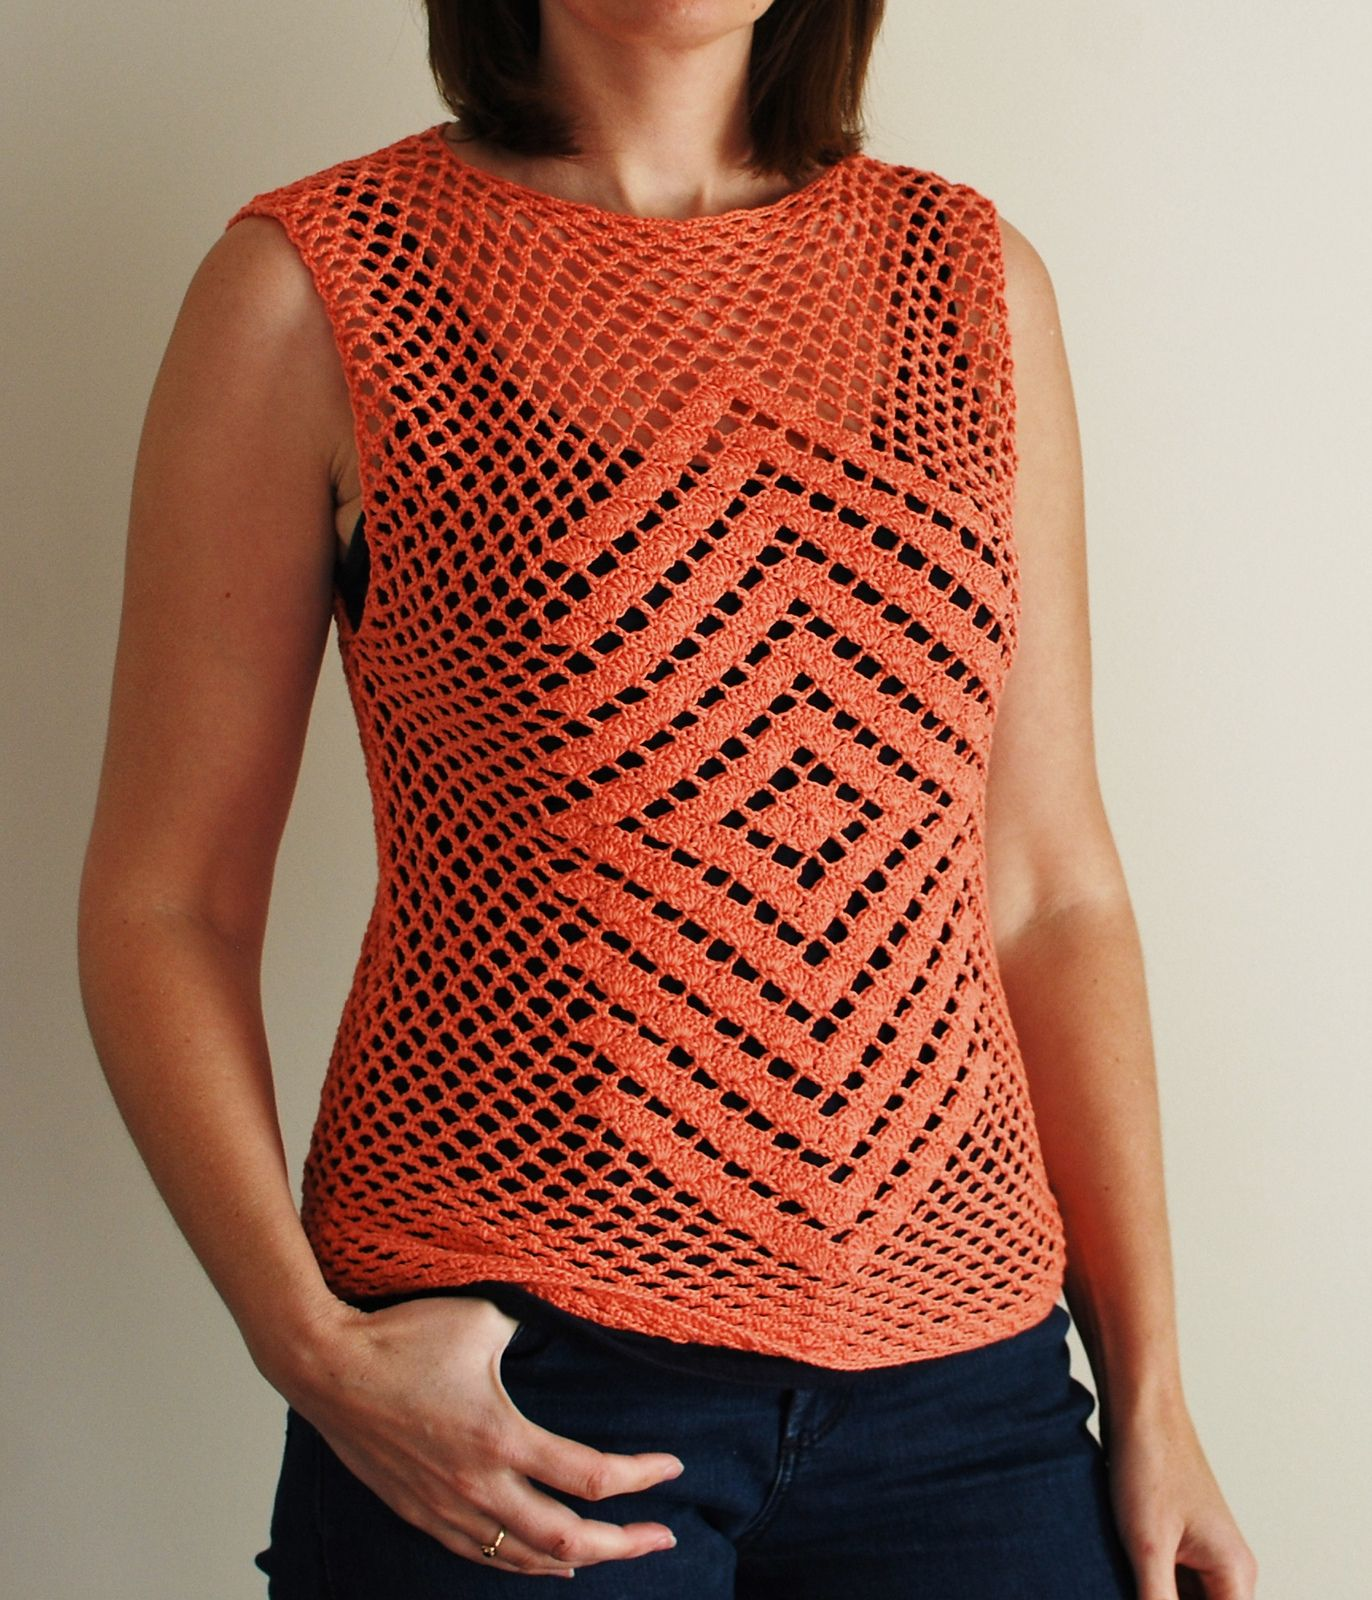 Chevron Top pattern by Periwinkle Crochet | Coupon codes, Coupons ...